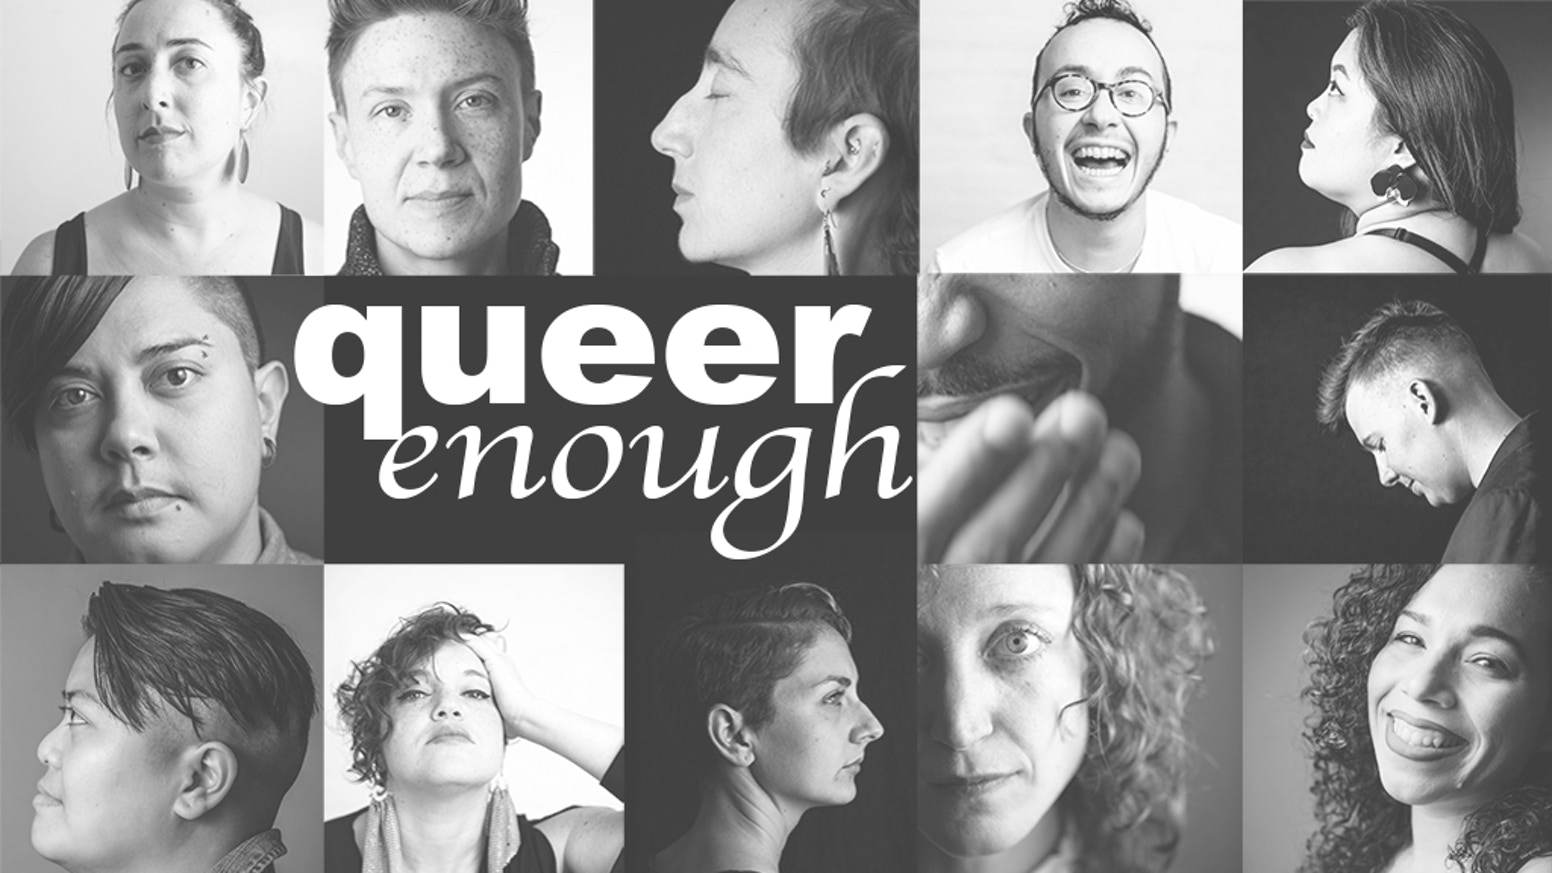 Queer Enough is a photography exhibit and portrait project about queer identity in DC.